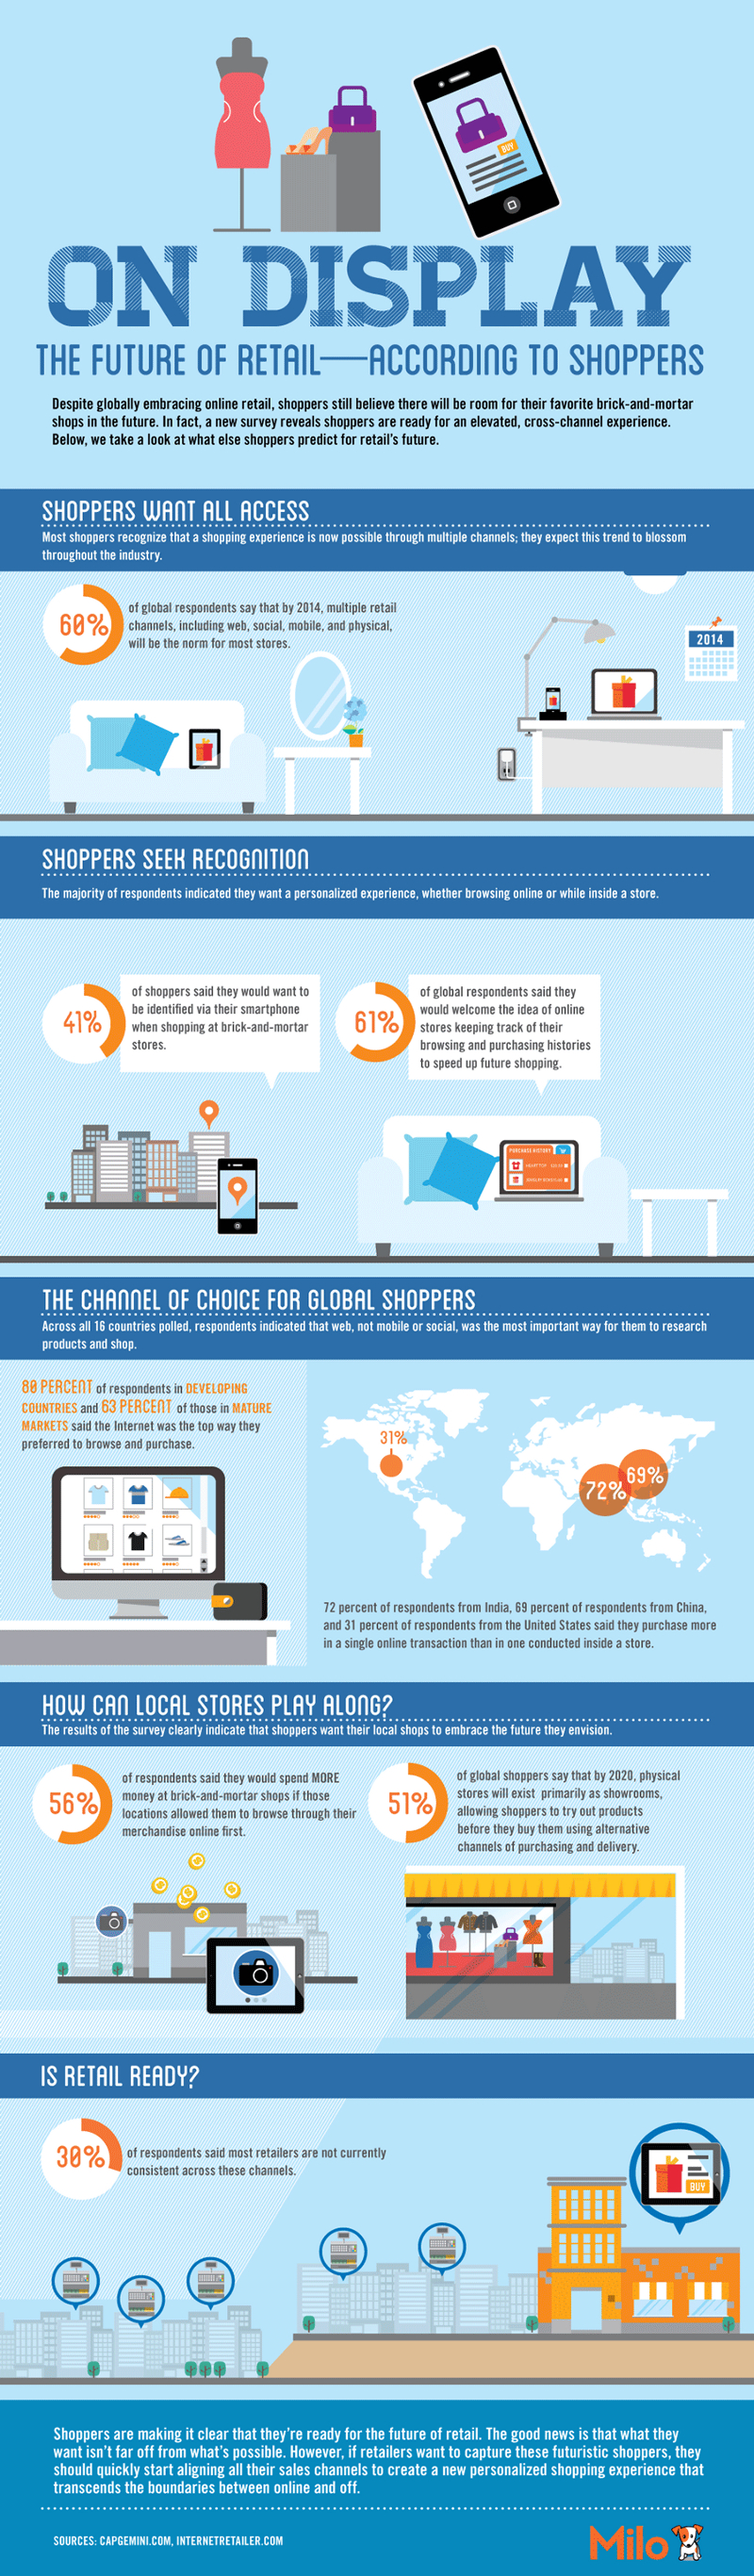 Mobile Retail Industry